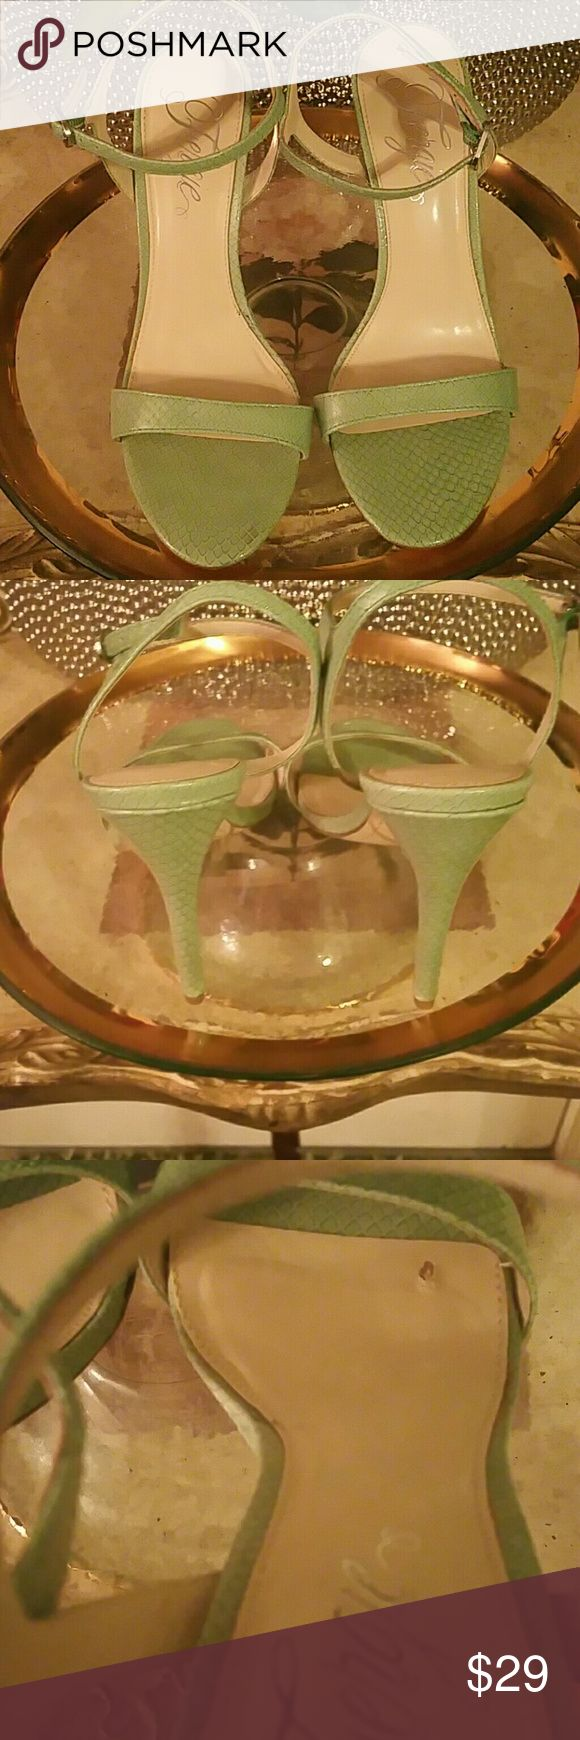 """FERGIE(ROXANNE) SANDALS This is a pretty shade of green and they are ready to go home with the right person. The heel is about 4.5"""". Please see photos. These are pre-owned in good condition. Please see pic 3 for the extra love on the inner sole. Leather upper and the rest man-made. 11.9.16 Fergie Shoes Flats & Loafers"""